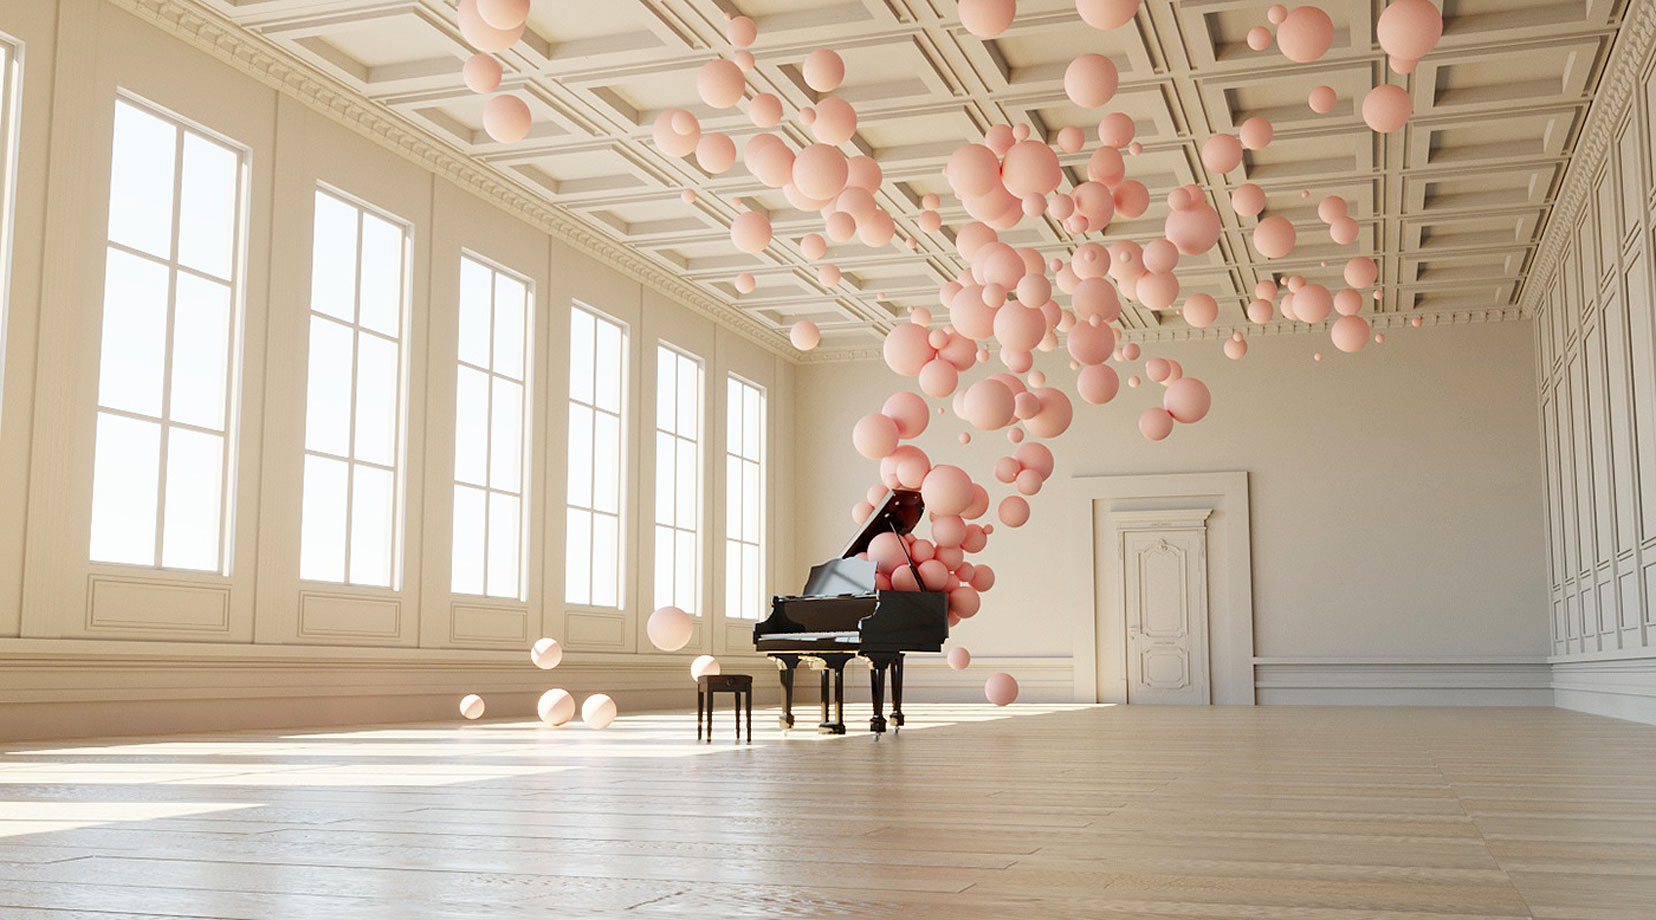 Music in Motion: Filling Spaces by Federico Picci